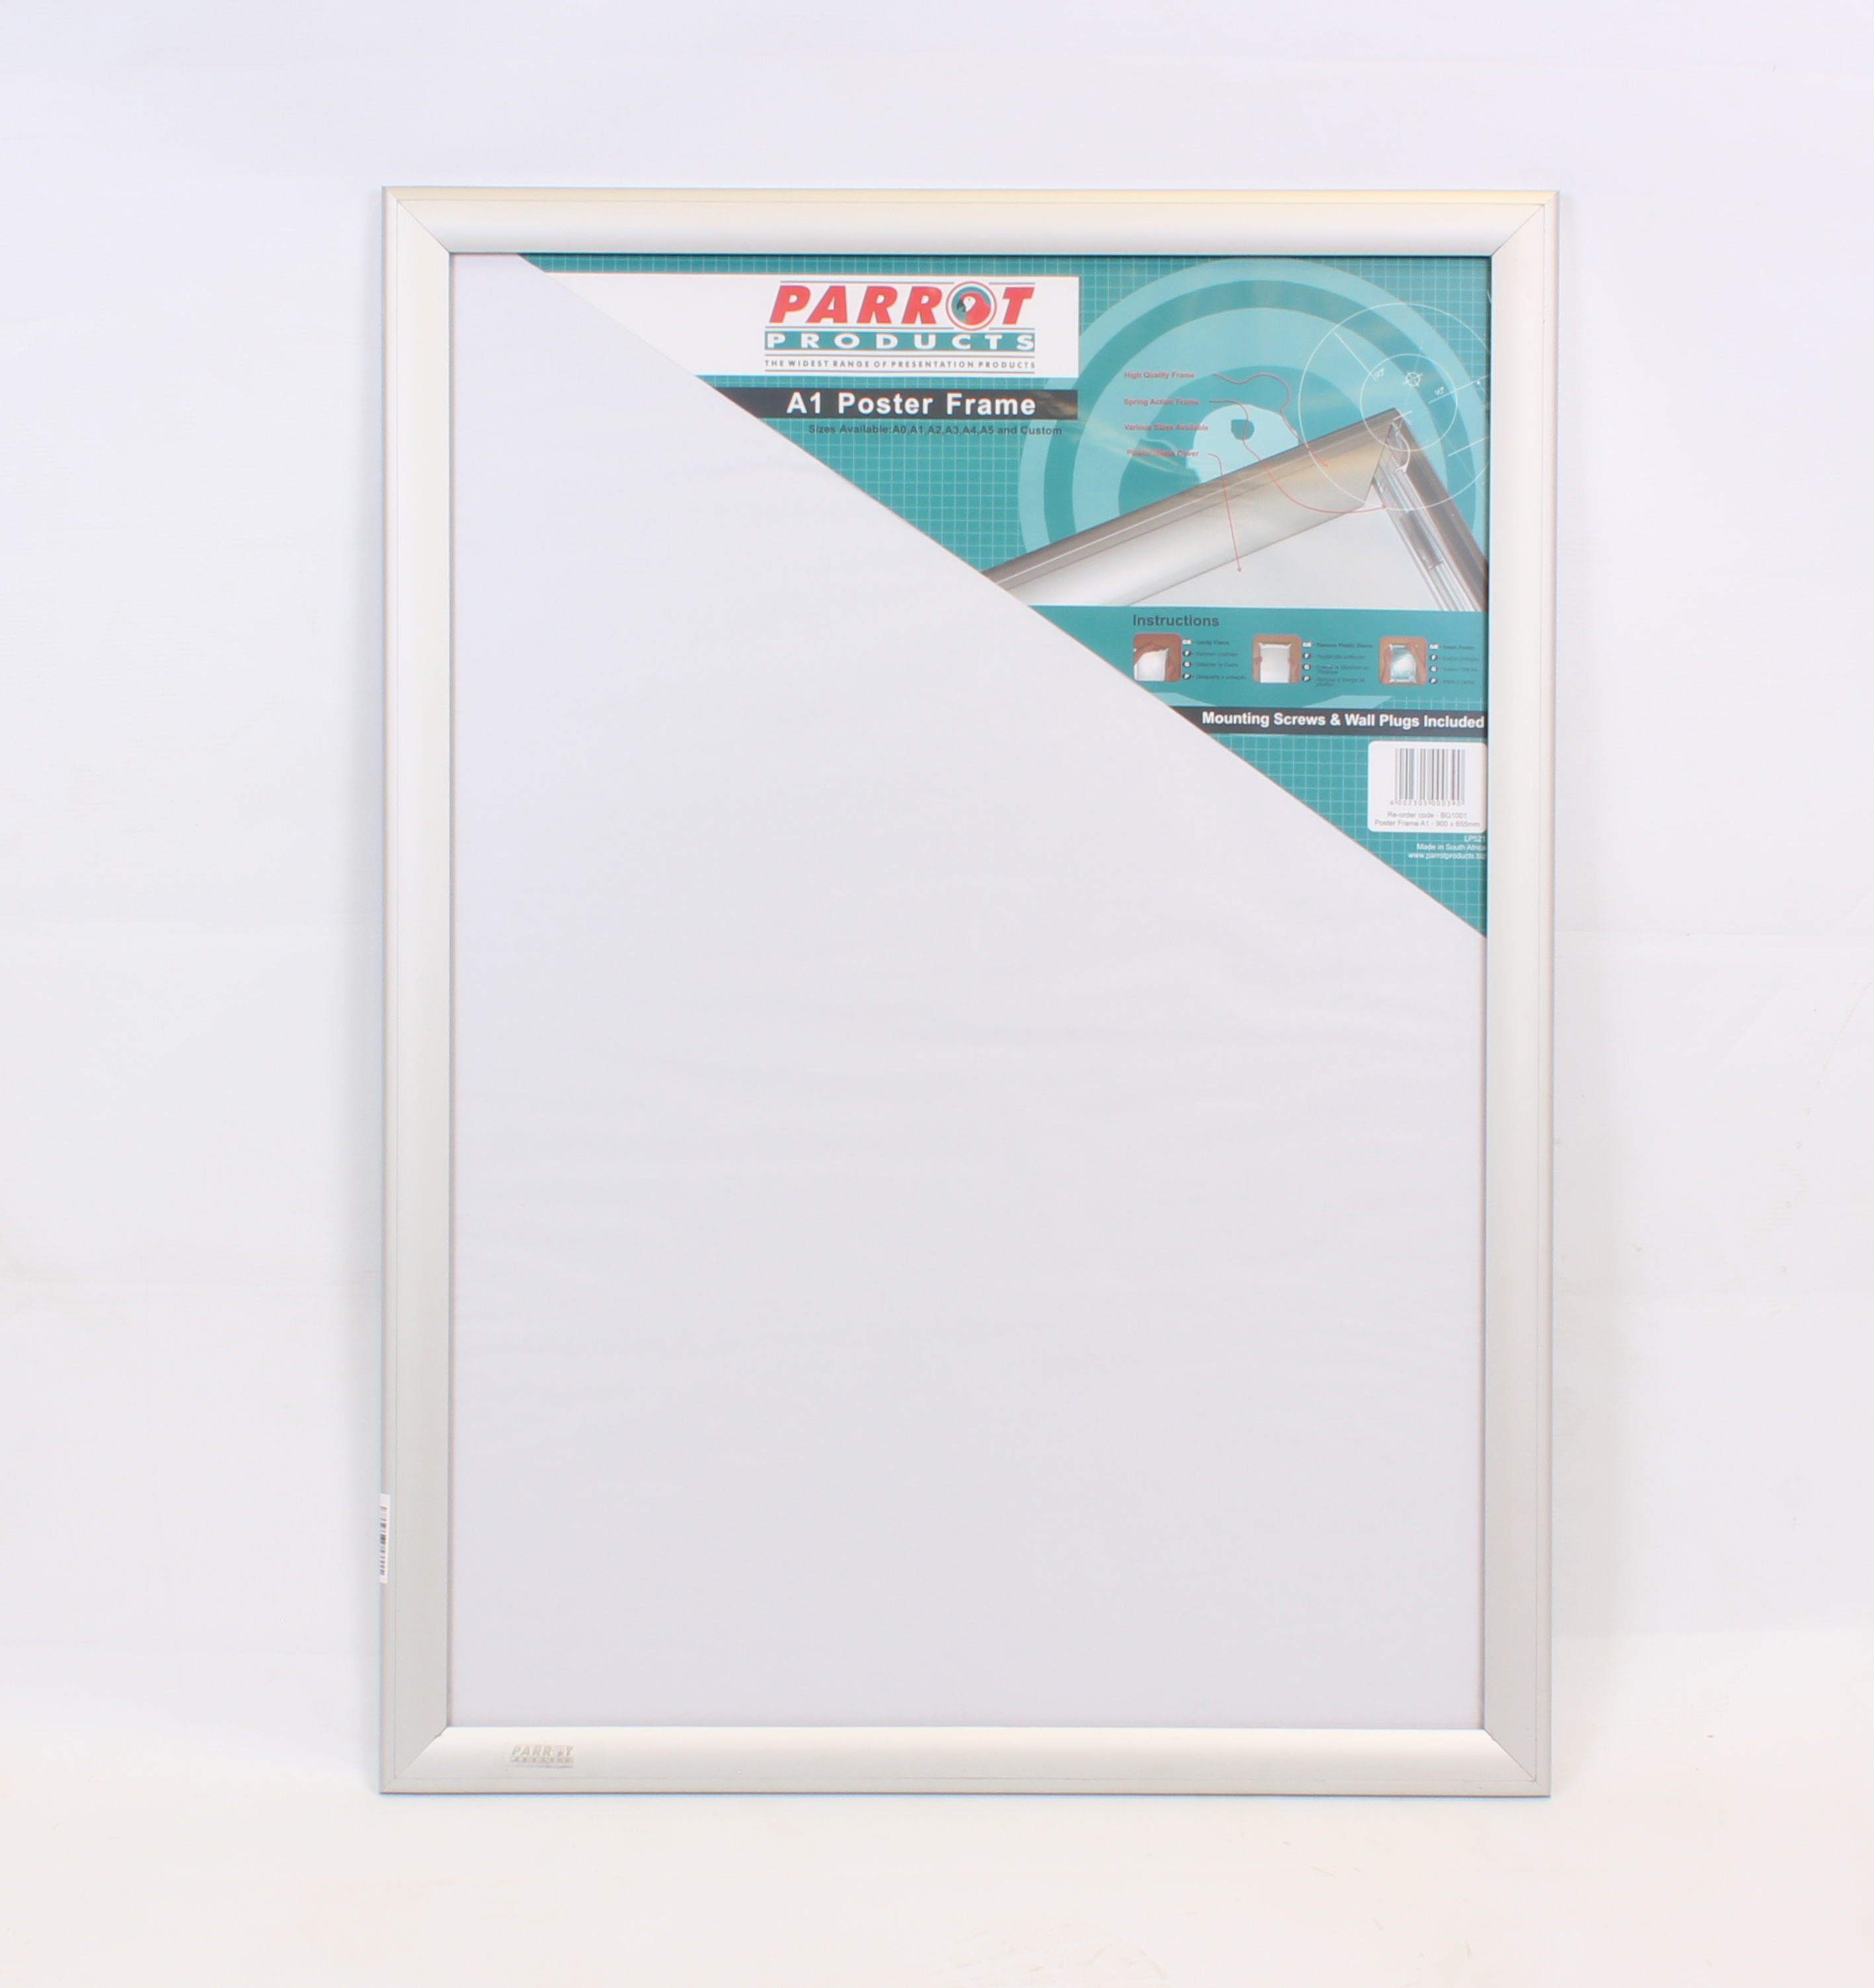 Poster Frame (A1, 900*655mm, Double Sided, Mitred Corner)